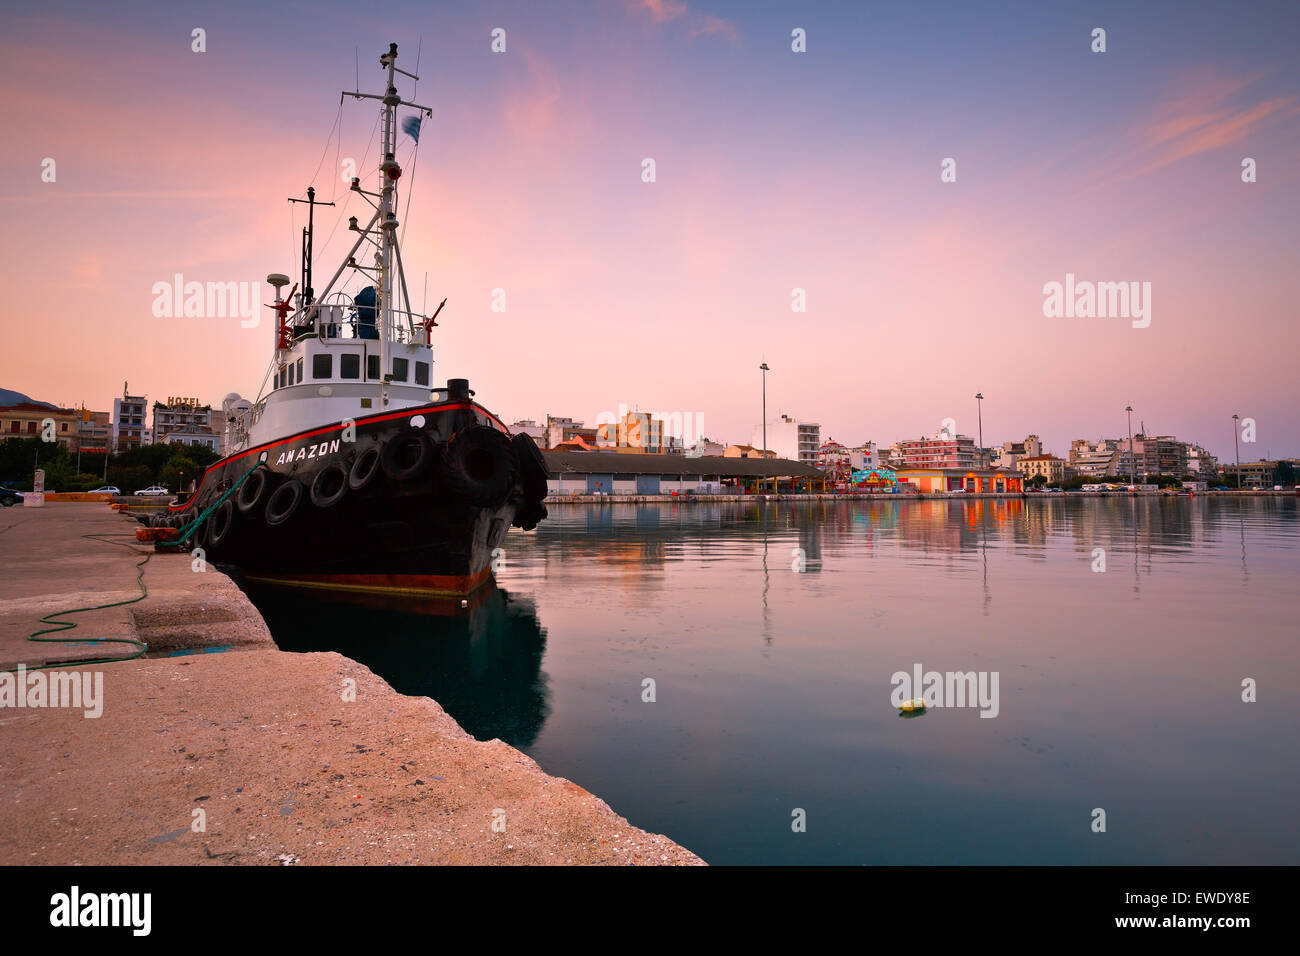 Tug docked in the port of Patras, Peloponnese, Greece - Stock Image